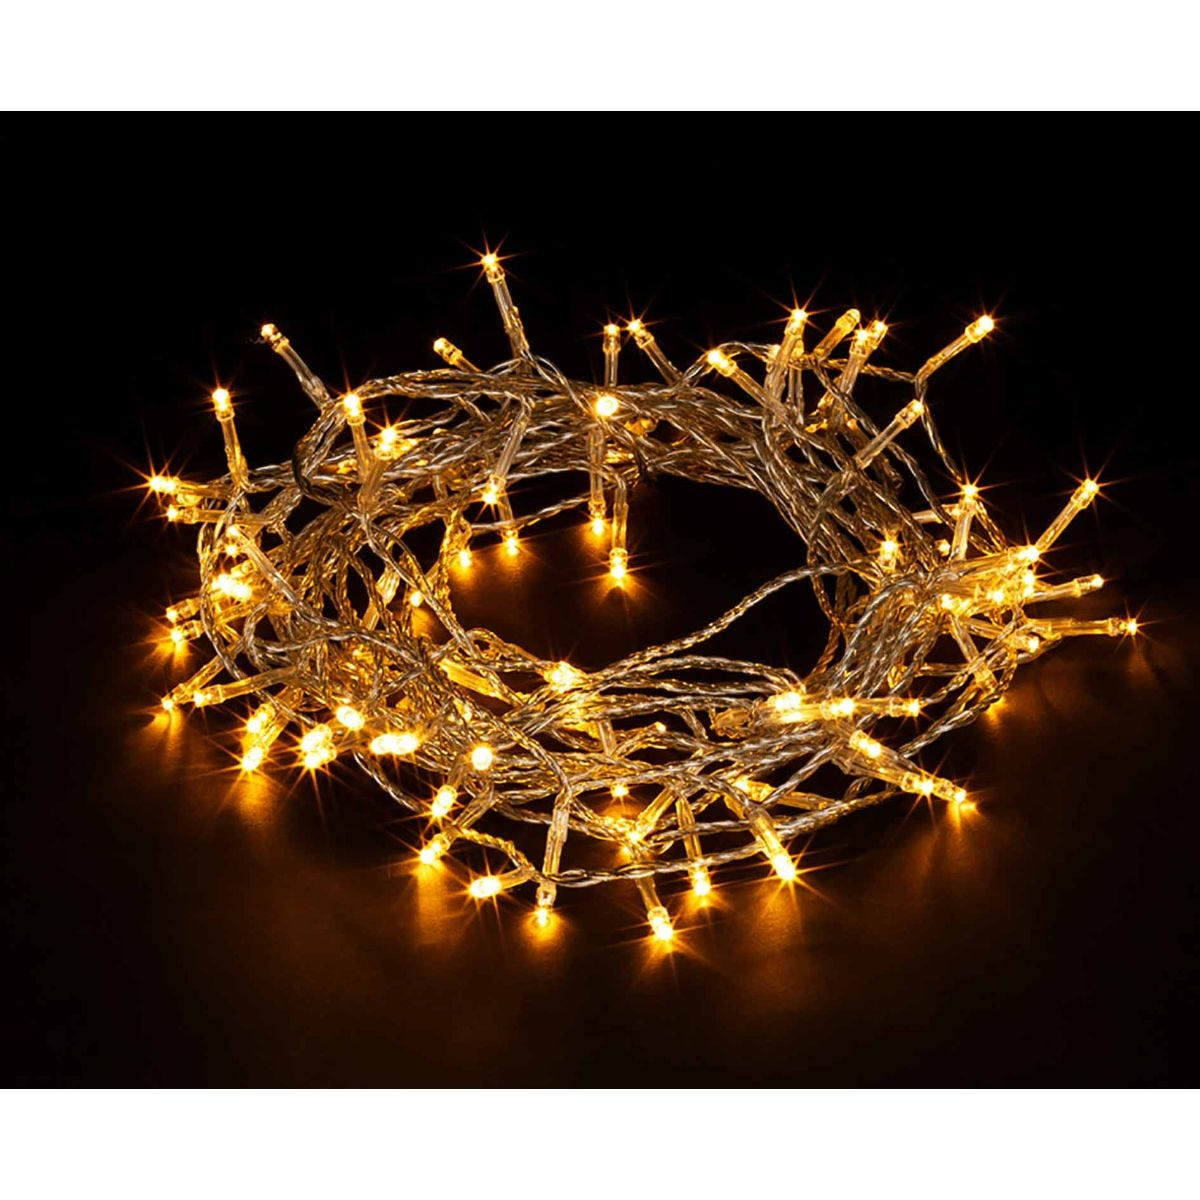 Compare prices for 100 Transparent String Lights Warm White, White